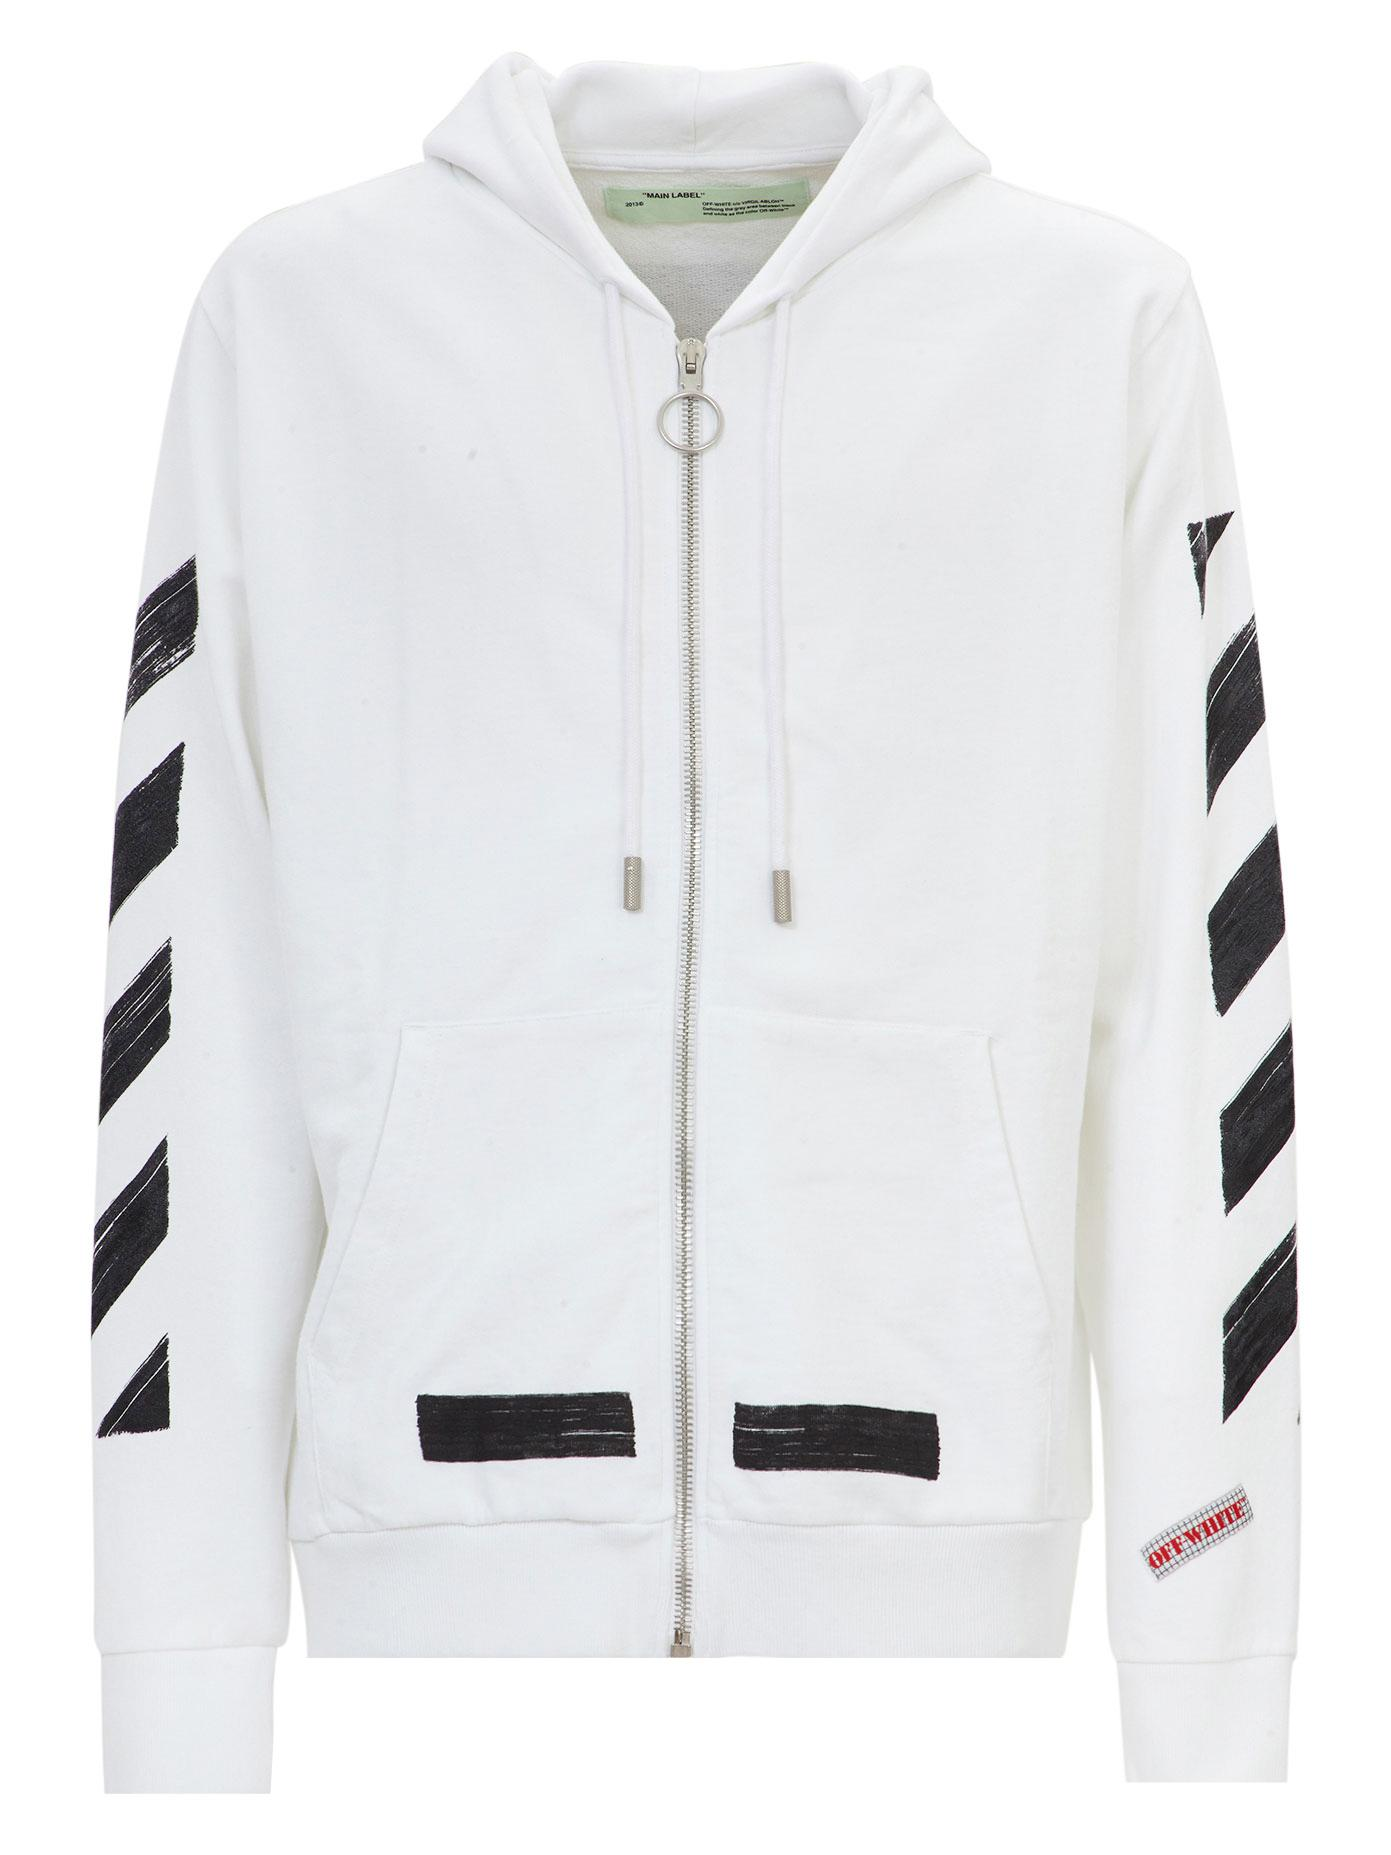 26aac5407d5f49 Off-White c/o Virgil Abloh Diag Brushed Zip Up Cotton Hoodie in ...